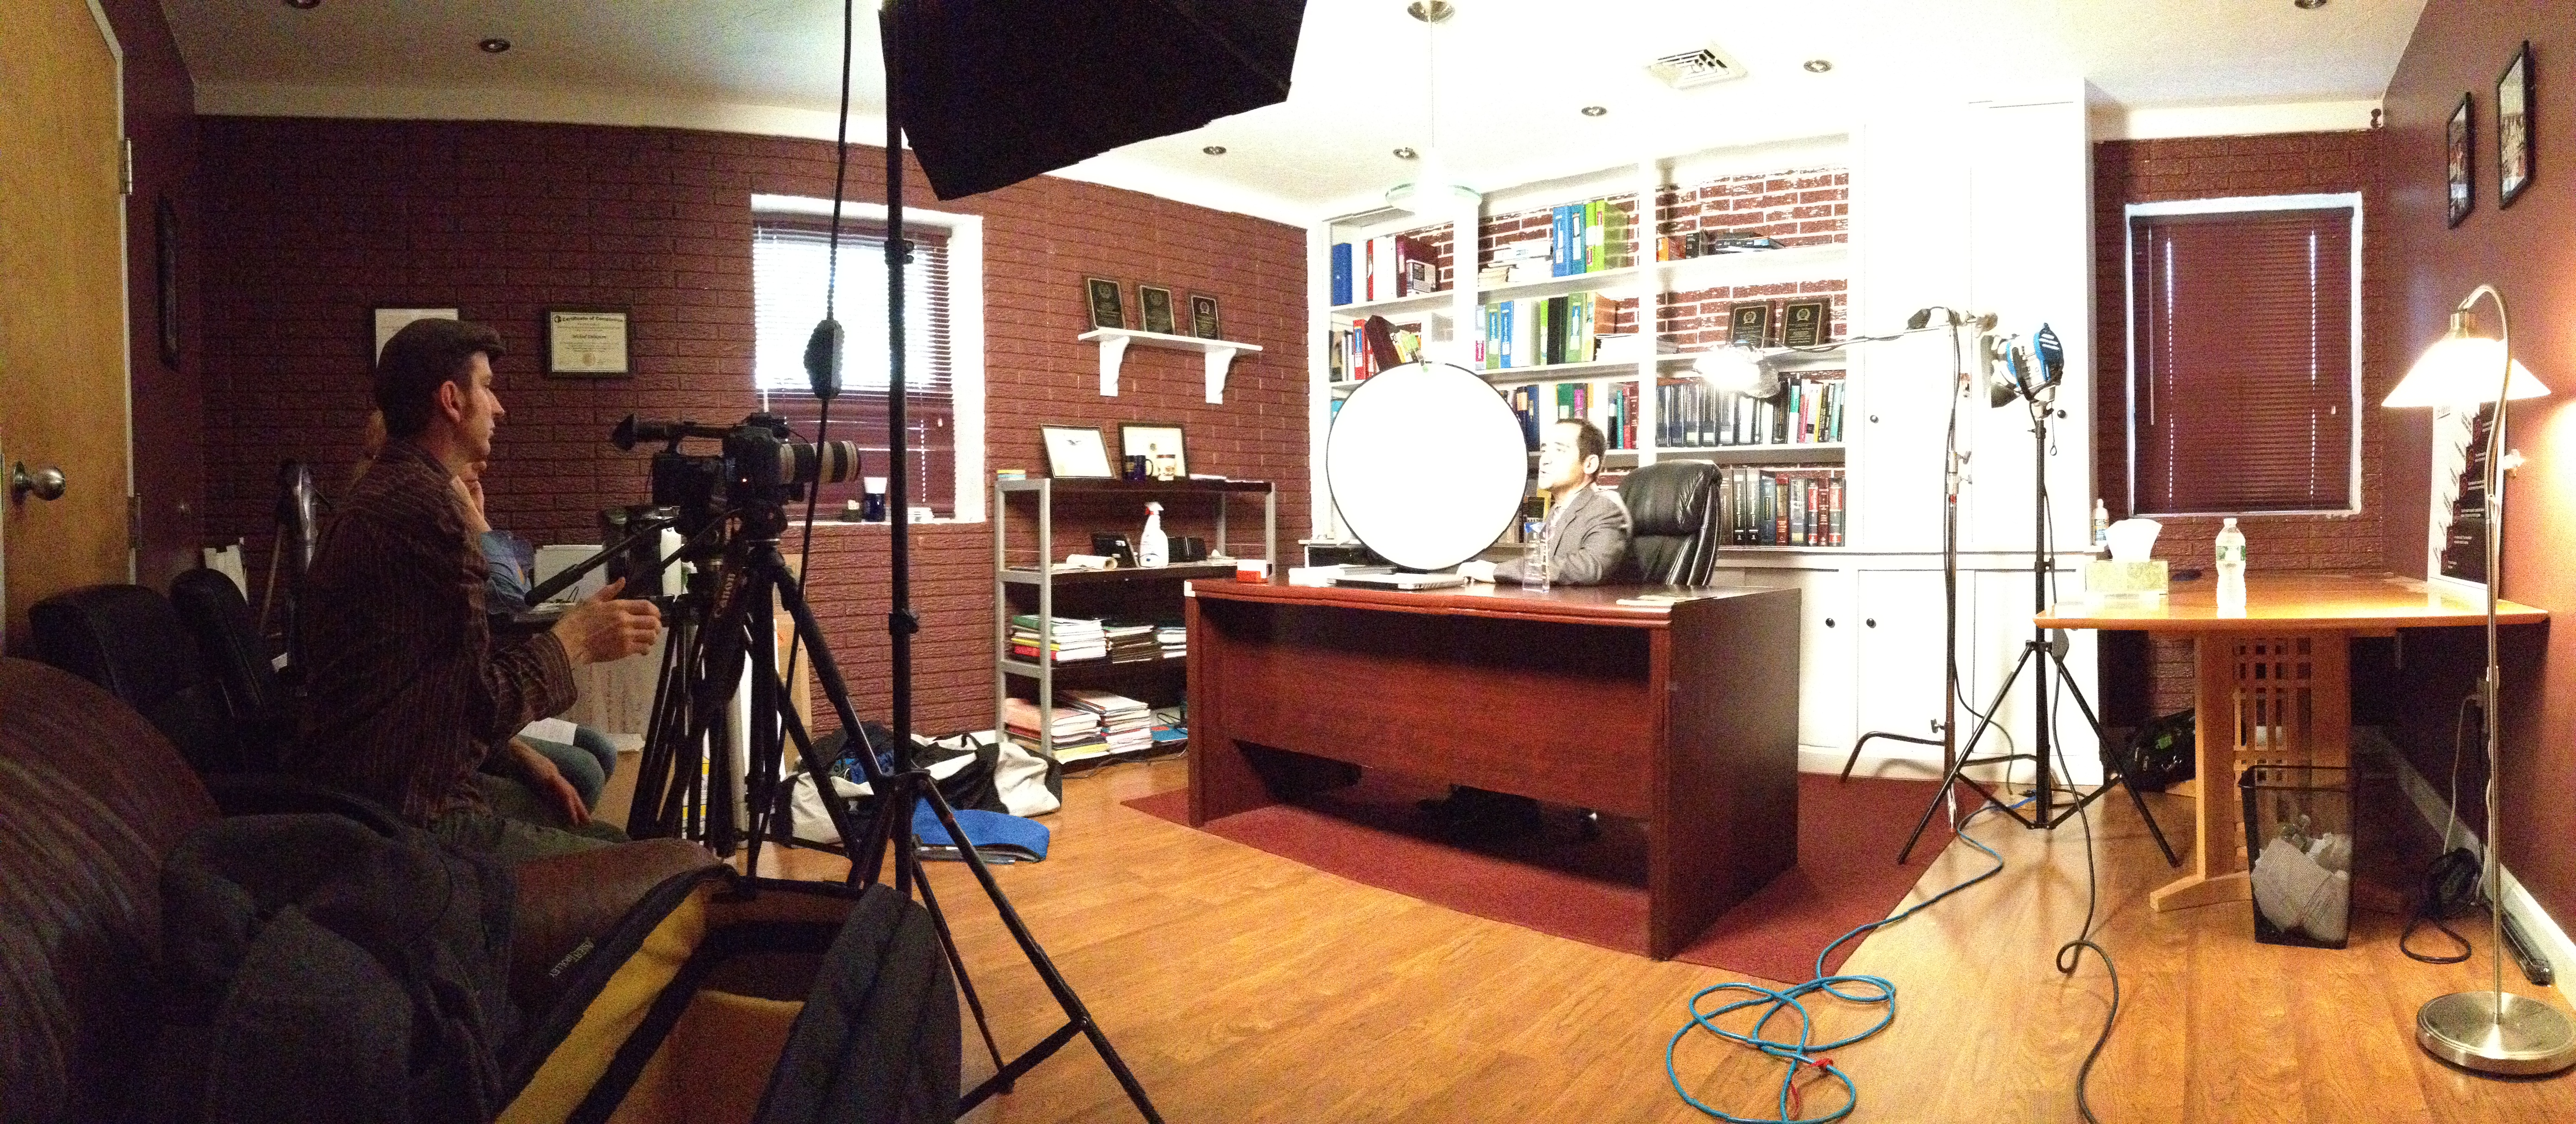 The Legal Marketing Shoot With Michael Delsignore!